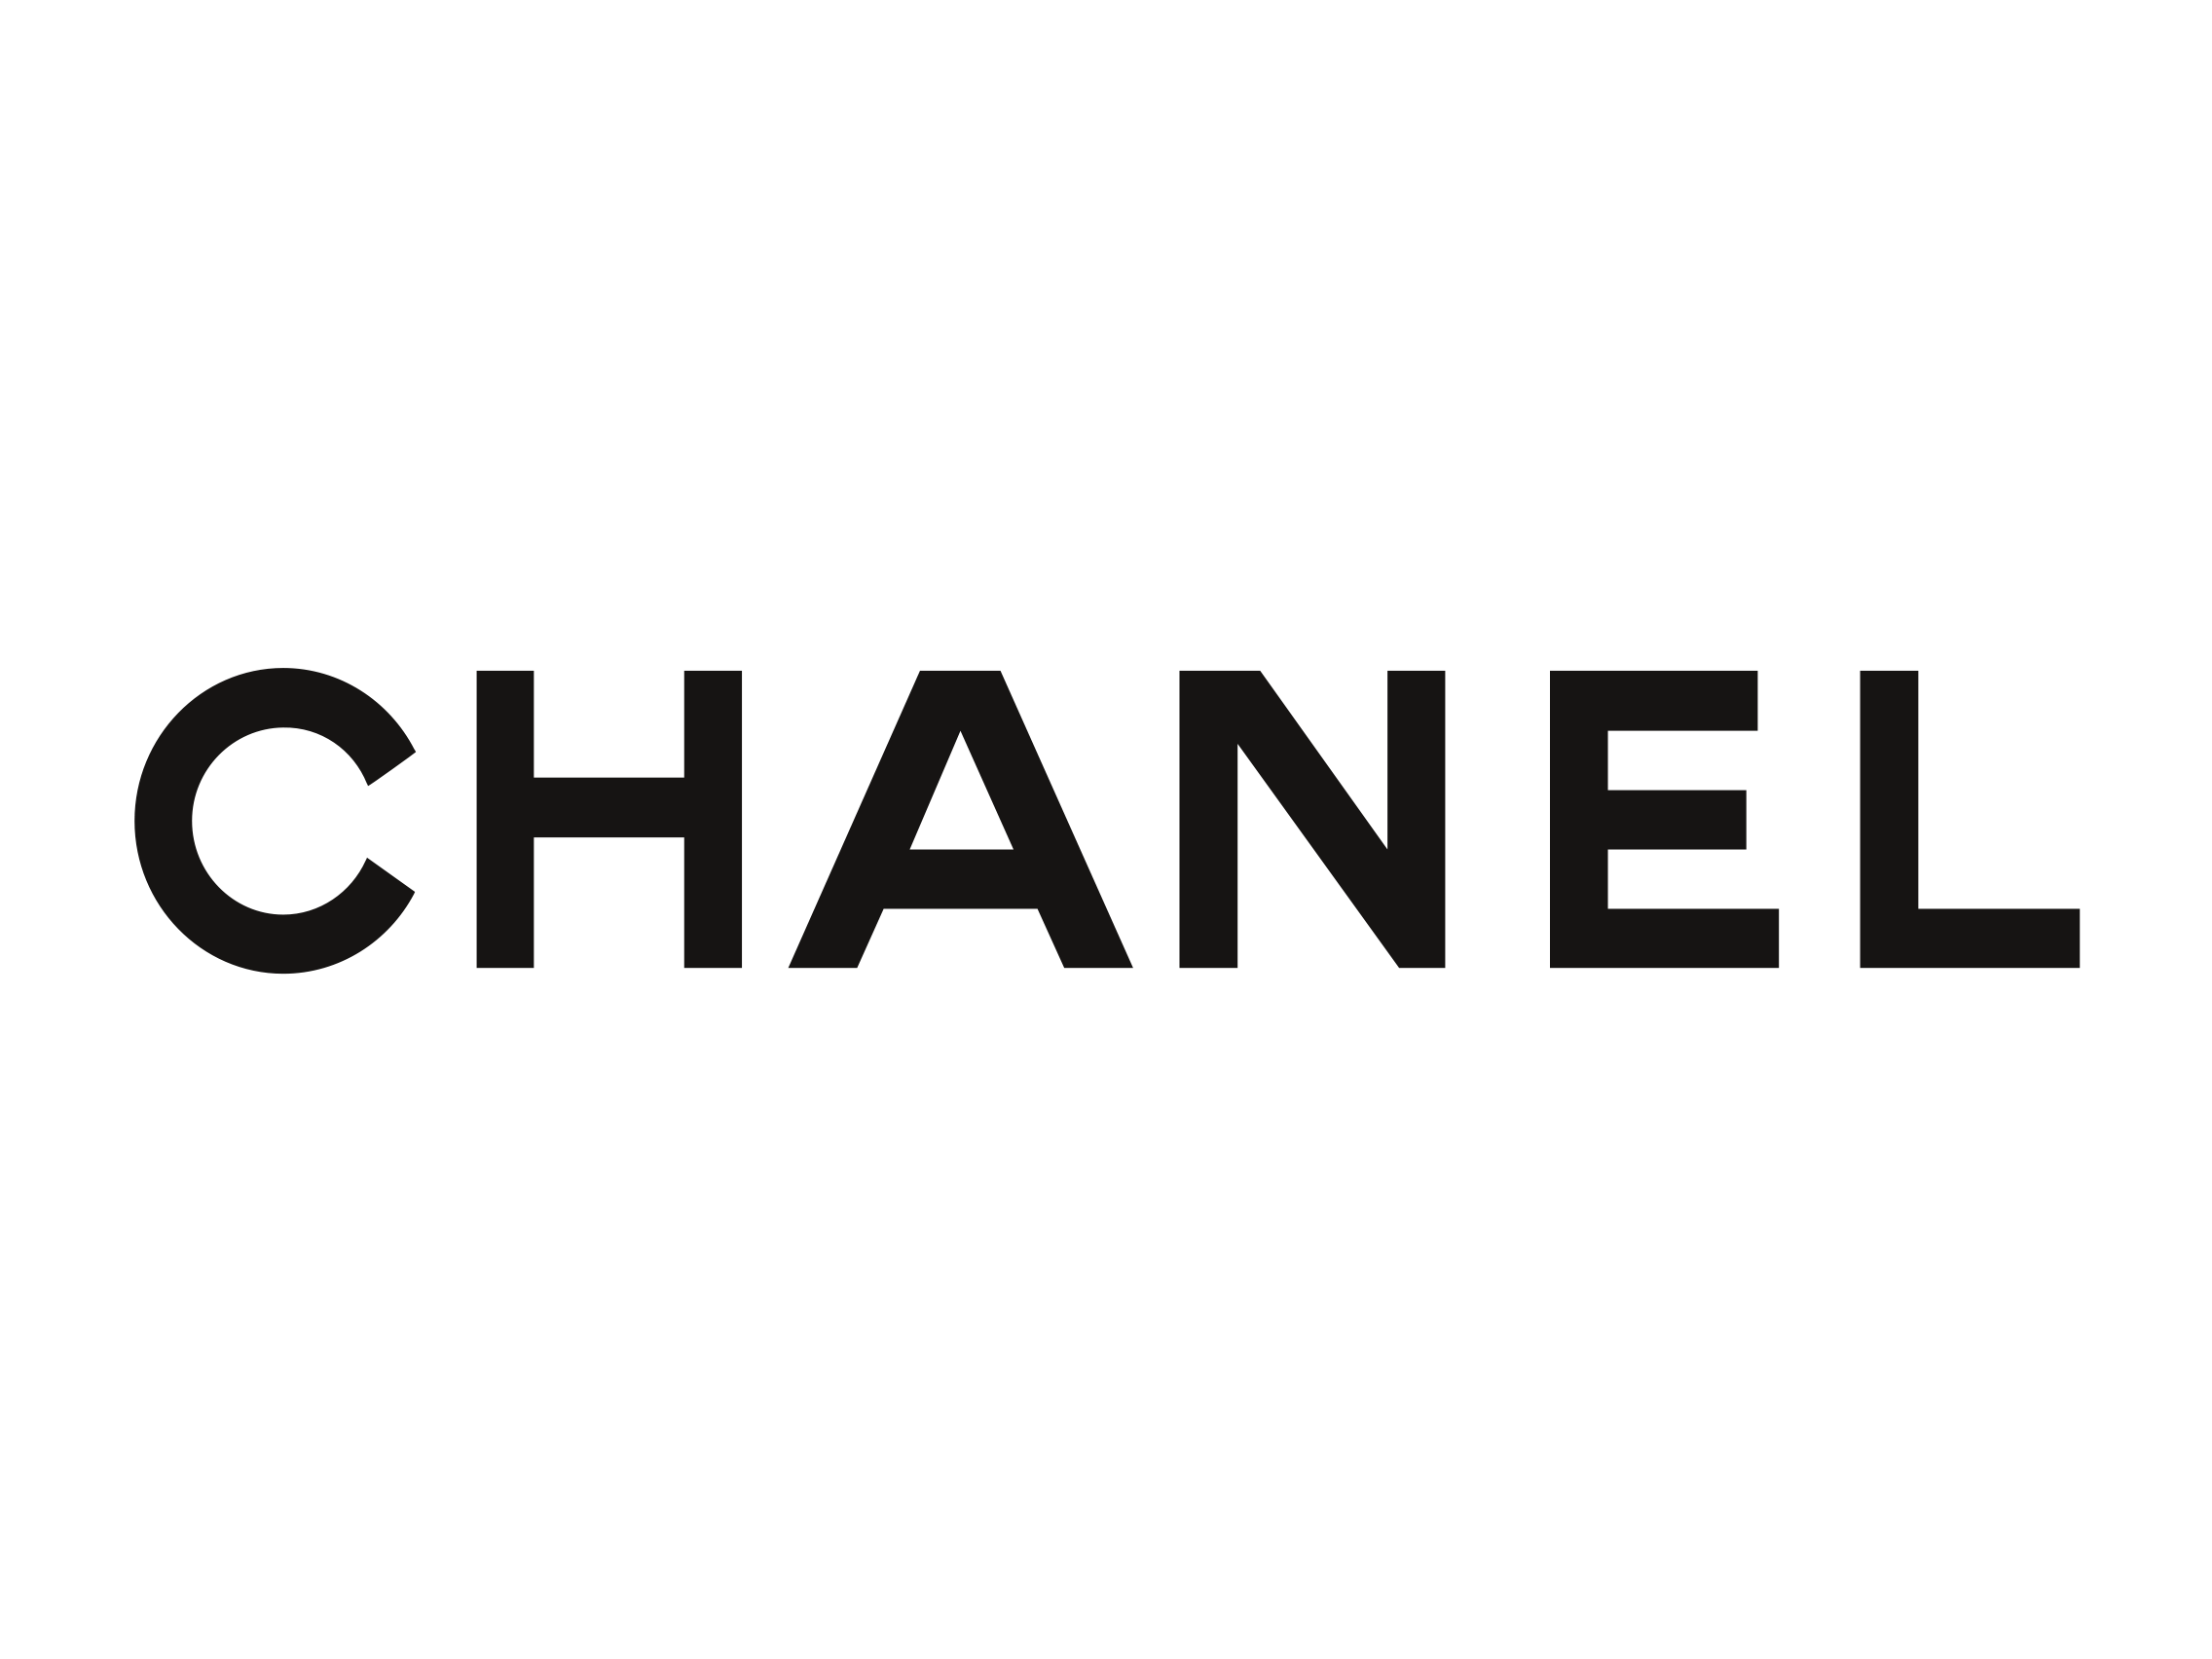 Chanel-Logo-PNG-Image.png